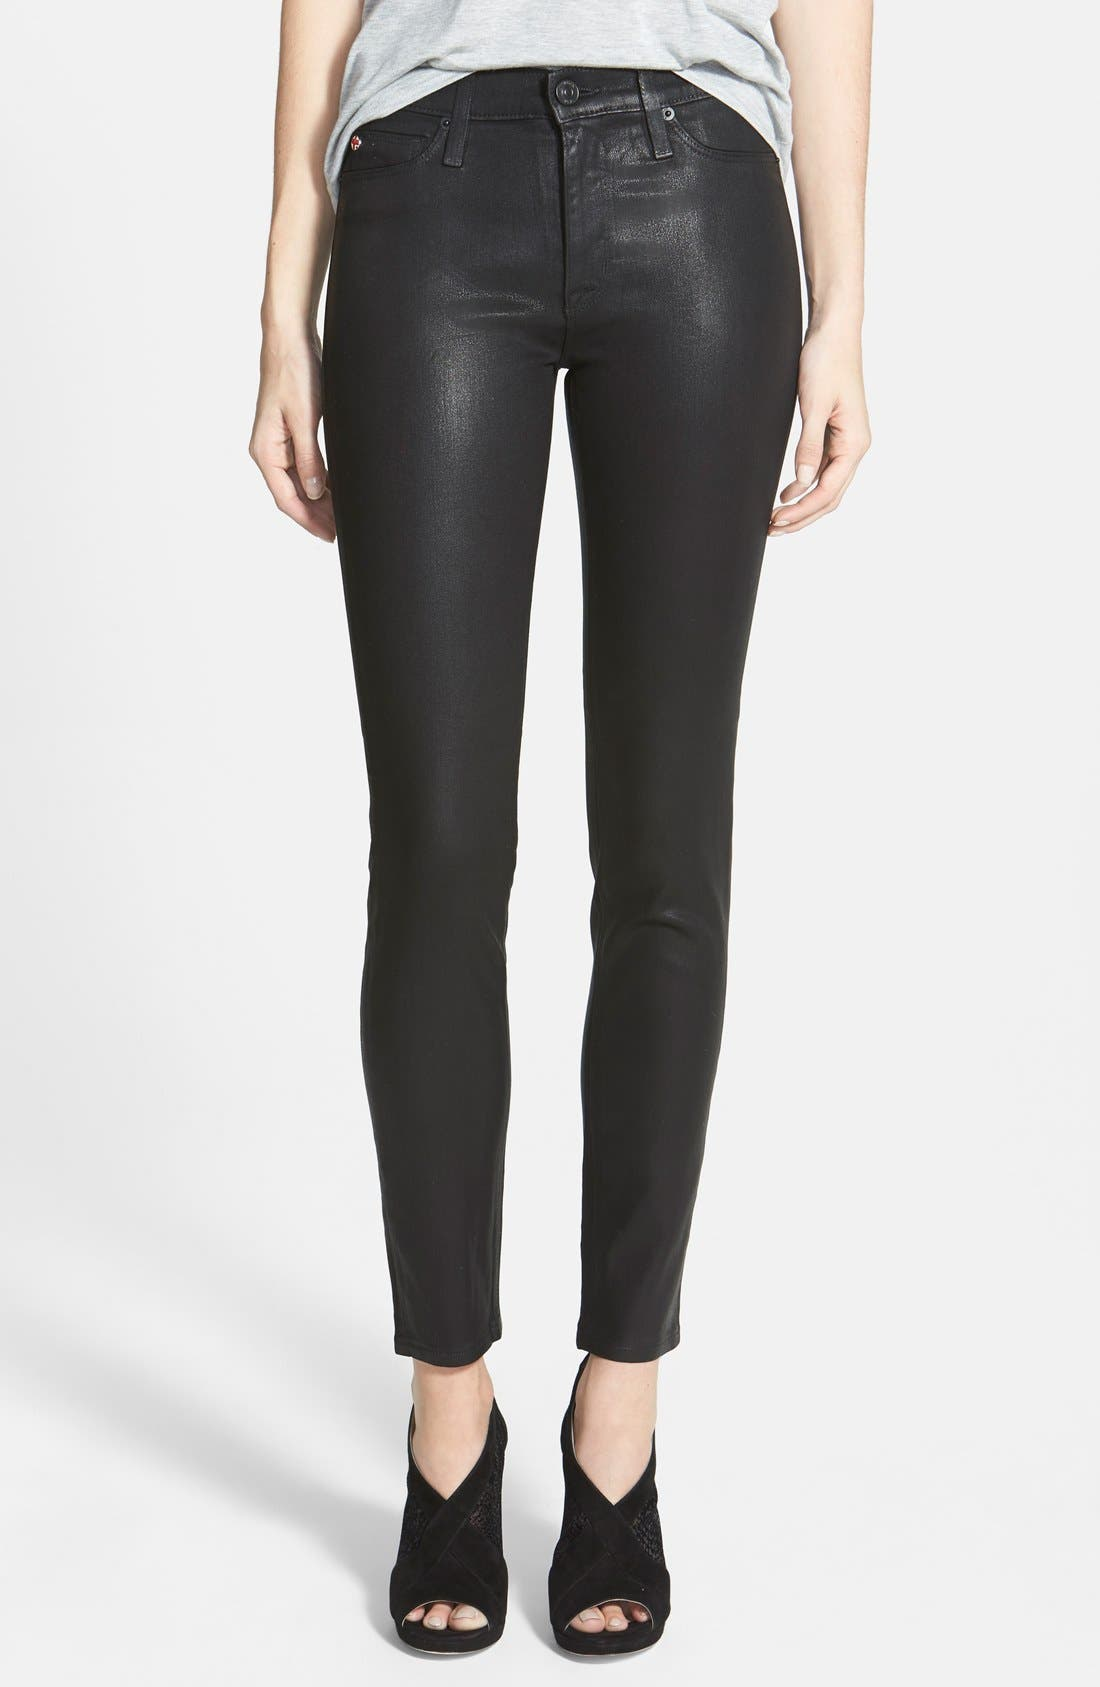 'Nico' Mid Rise Skinny Stretch Jeans,                             Main thumbnail 1, color,                             001